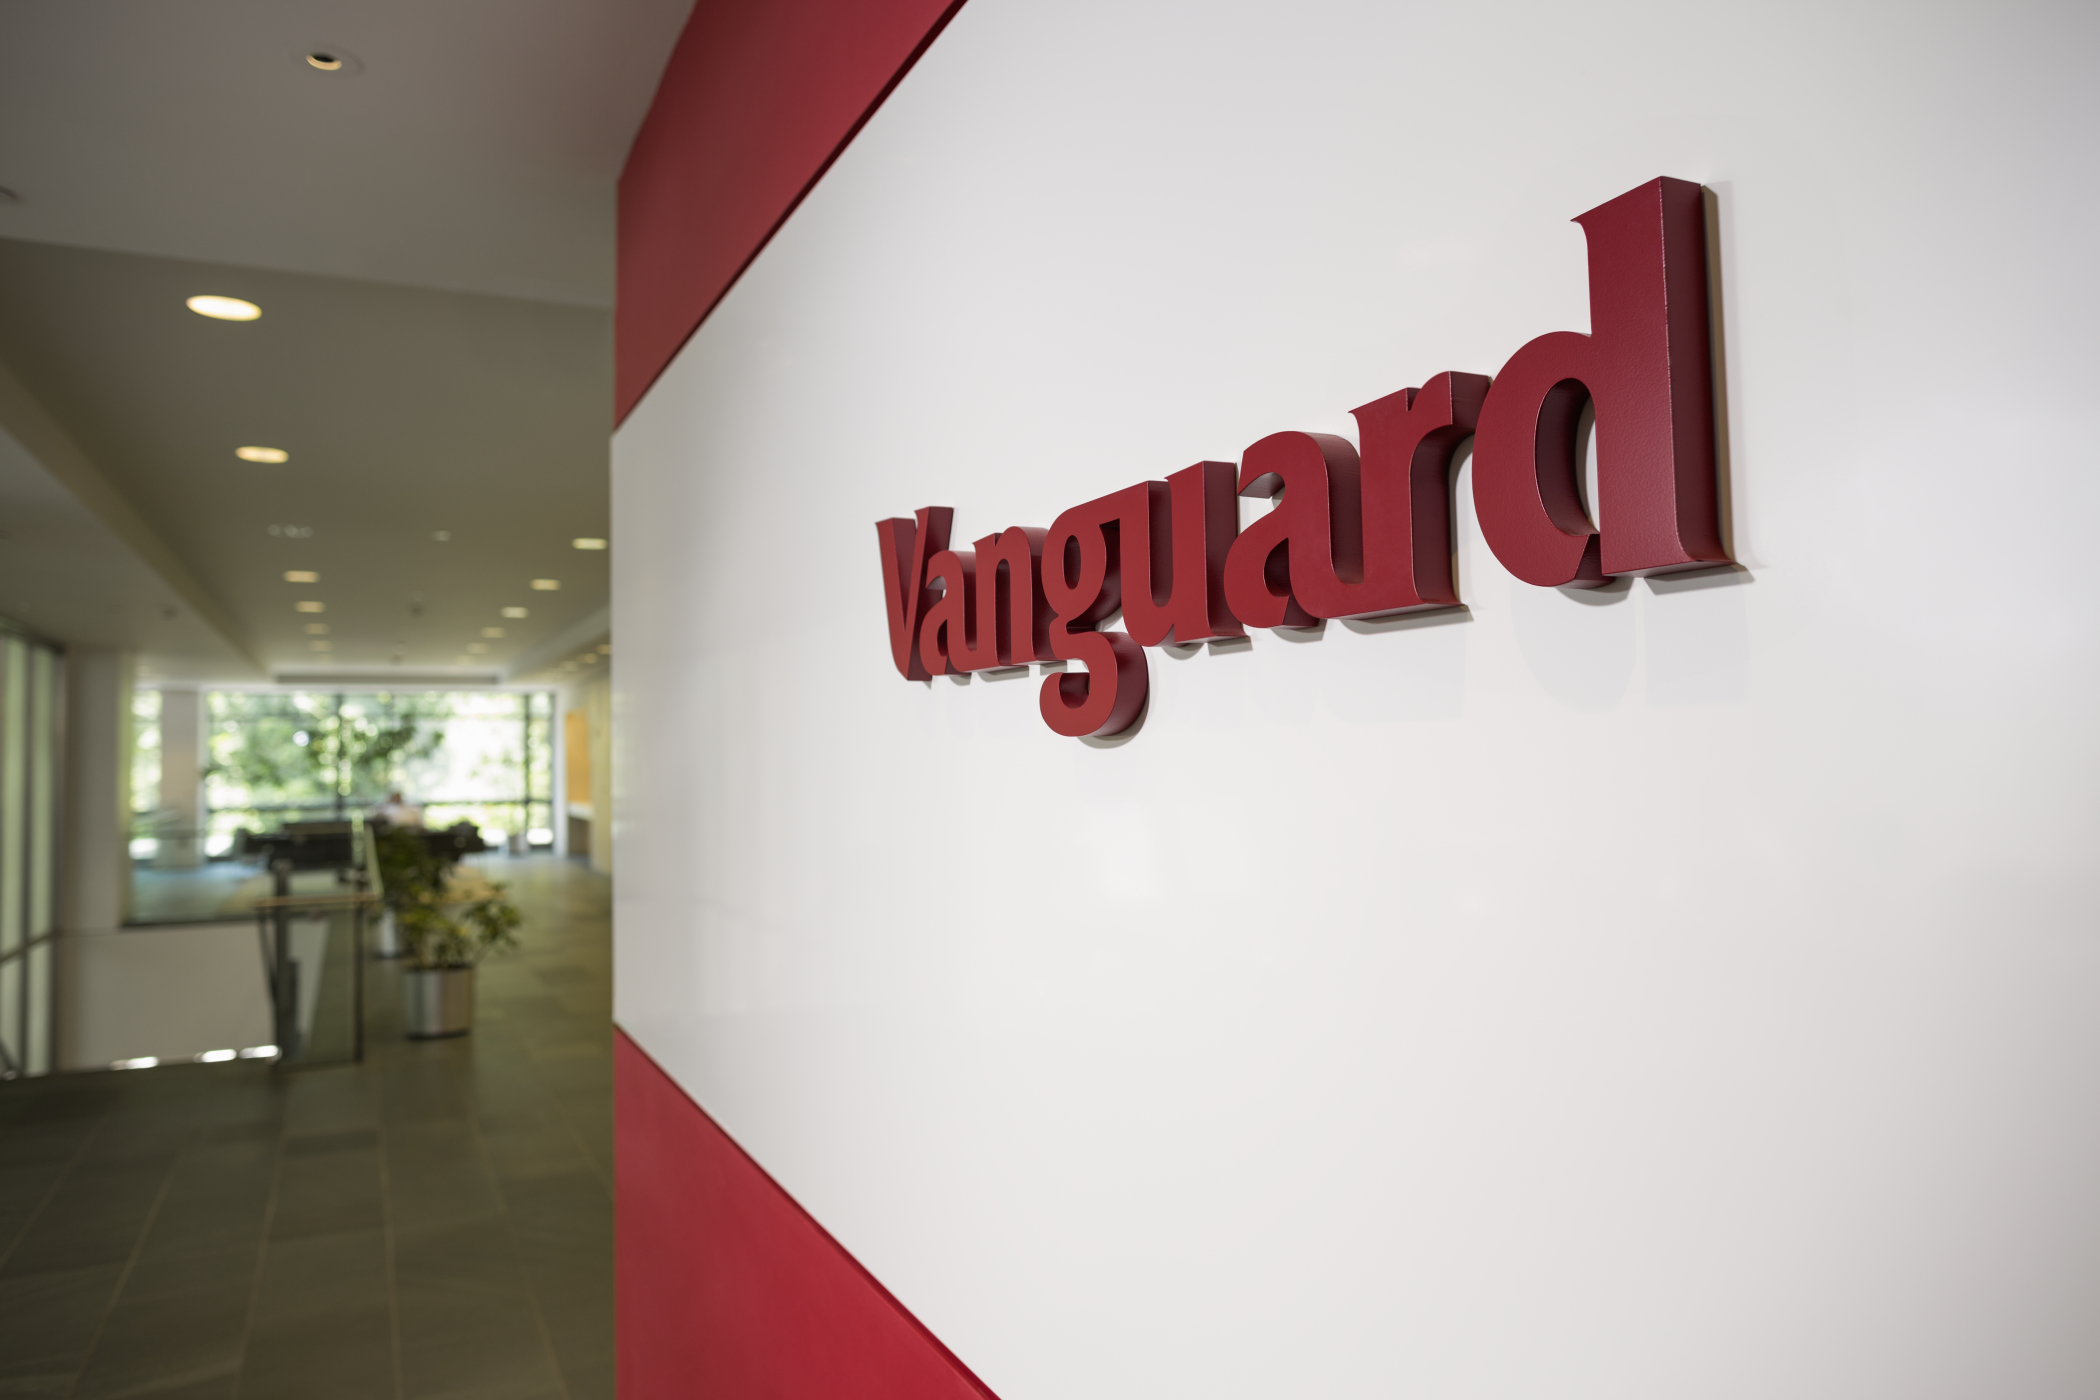 After Once Considering It for a New Campus, Vanguard to Sell 246-Acre Property in Exton